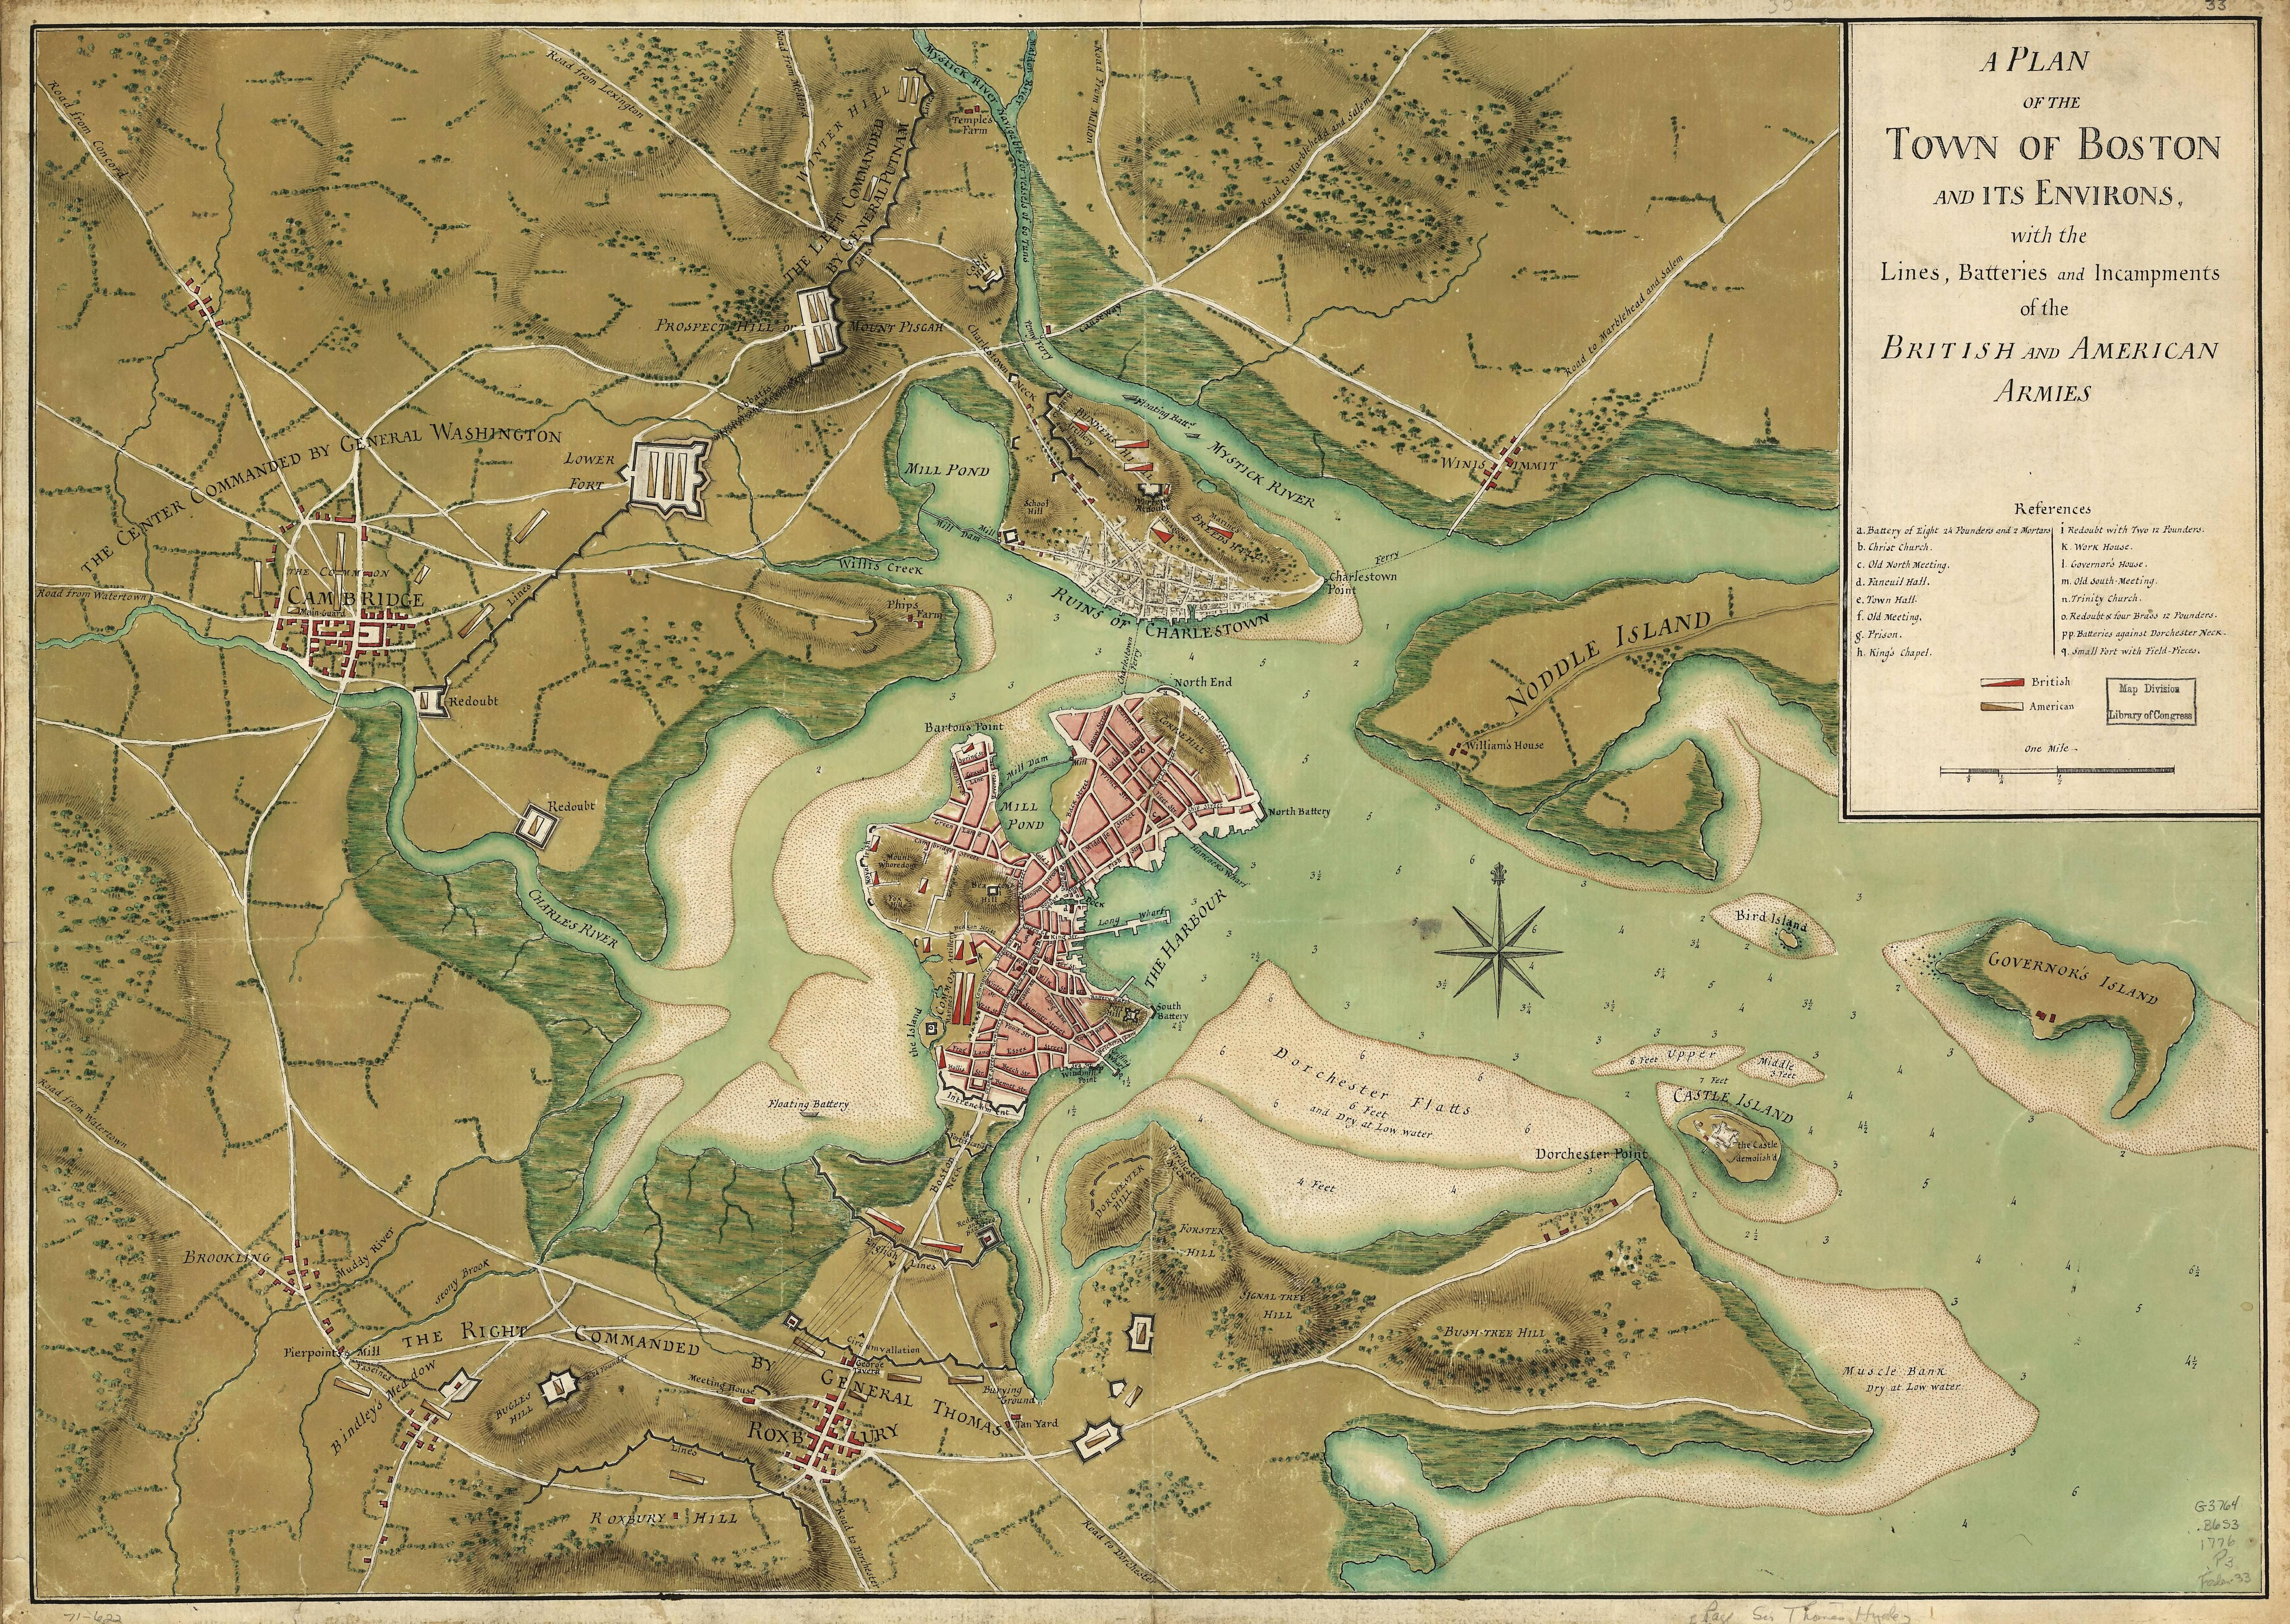 historical map of boston 1776 1776 Map Of Boston And Surrounding Areas During The Siege Of historical map of boston 1776